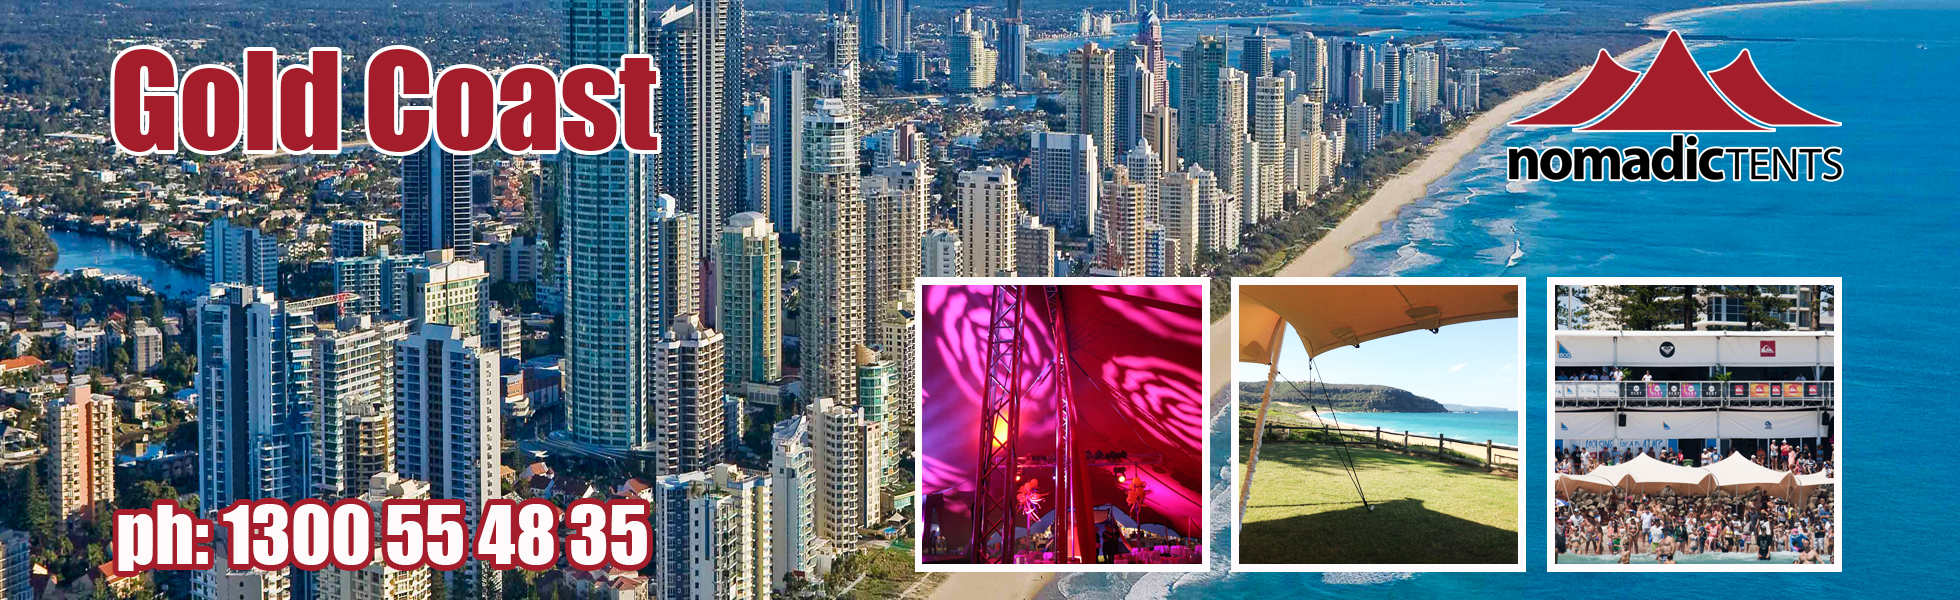 Nomadic Tents in Gold Coast